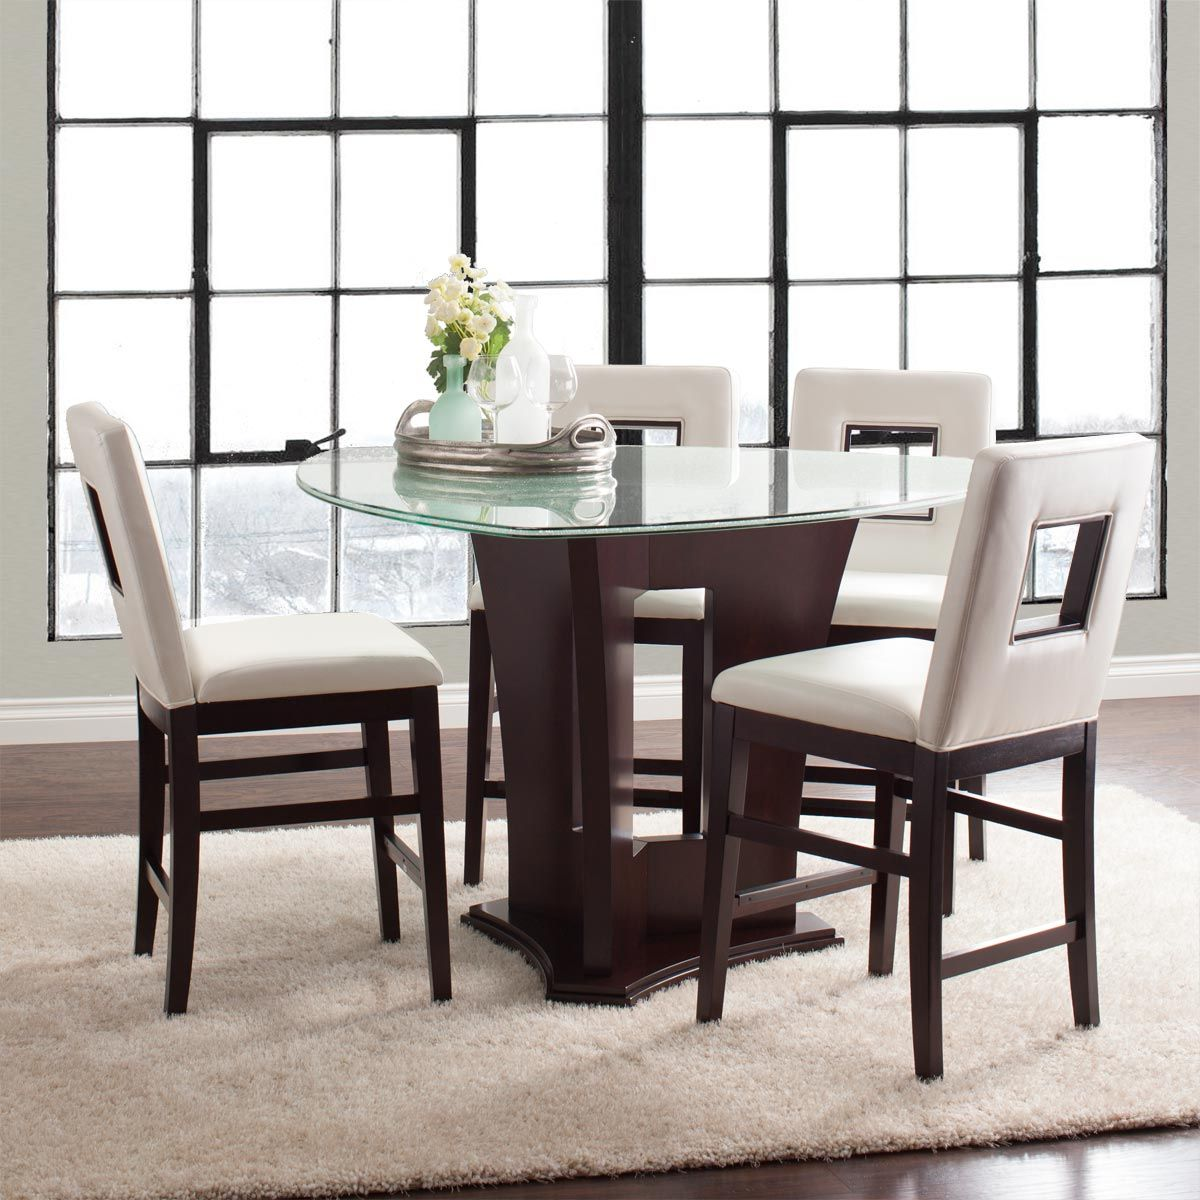 The Soho 5 Piece Glass Dining Set Offers Contemporary Style With A Beautiful Crackled G Glass Dining Room Sets Dining Room Table Set Dining Room Furniture Sets